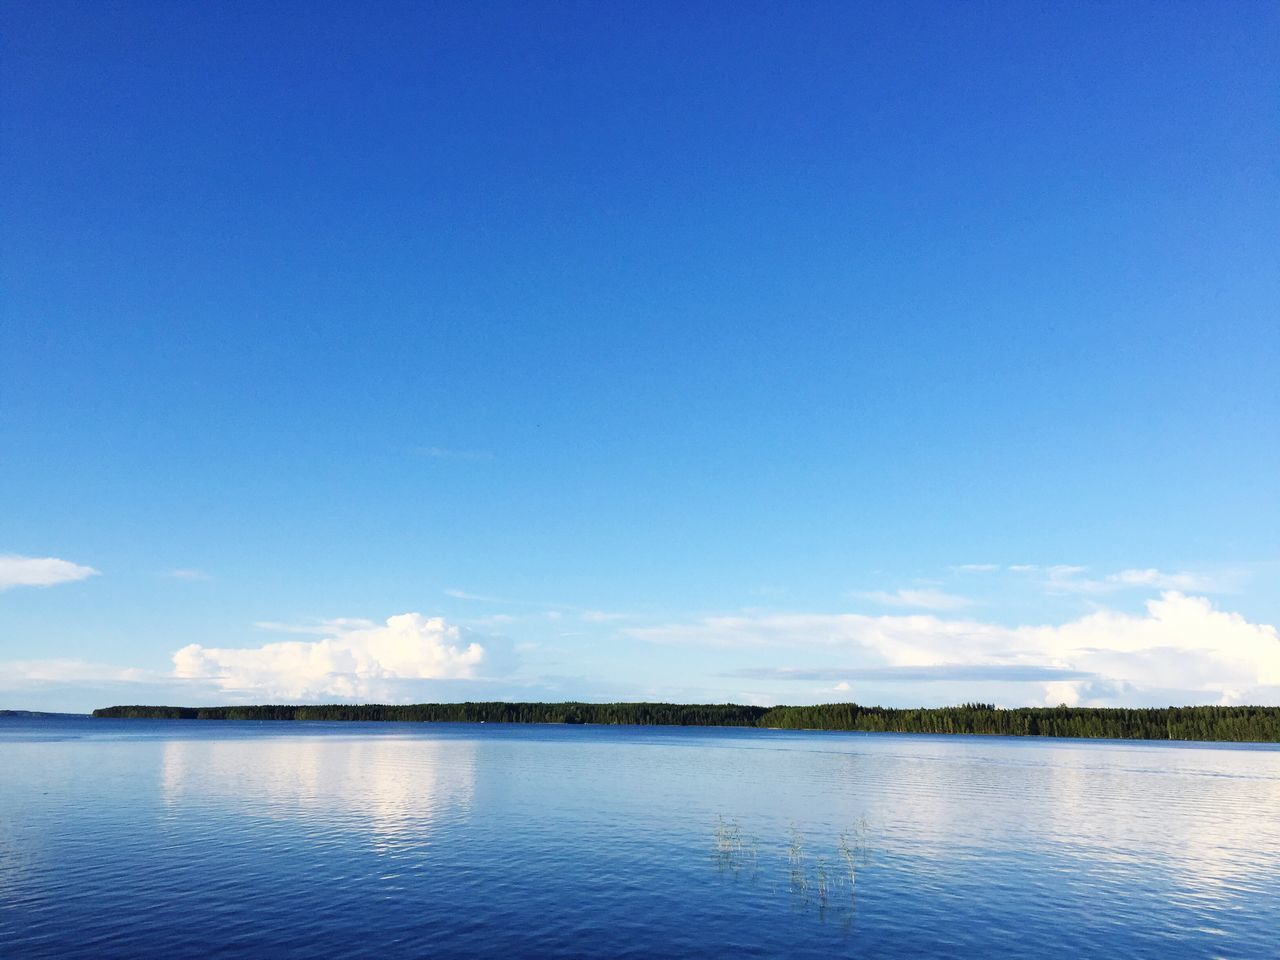 Finnish Lakeview Lake Lakeside Lake View Lakeshore Lakescape Blue Blue Sky Finnland Finland